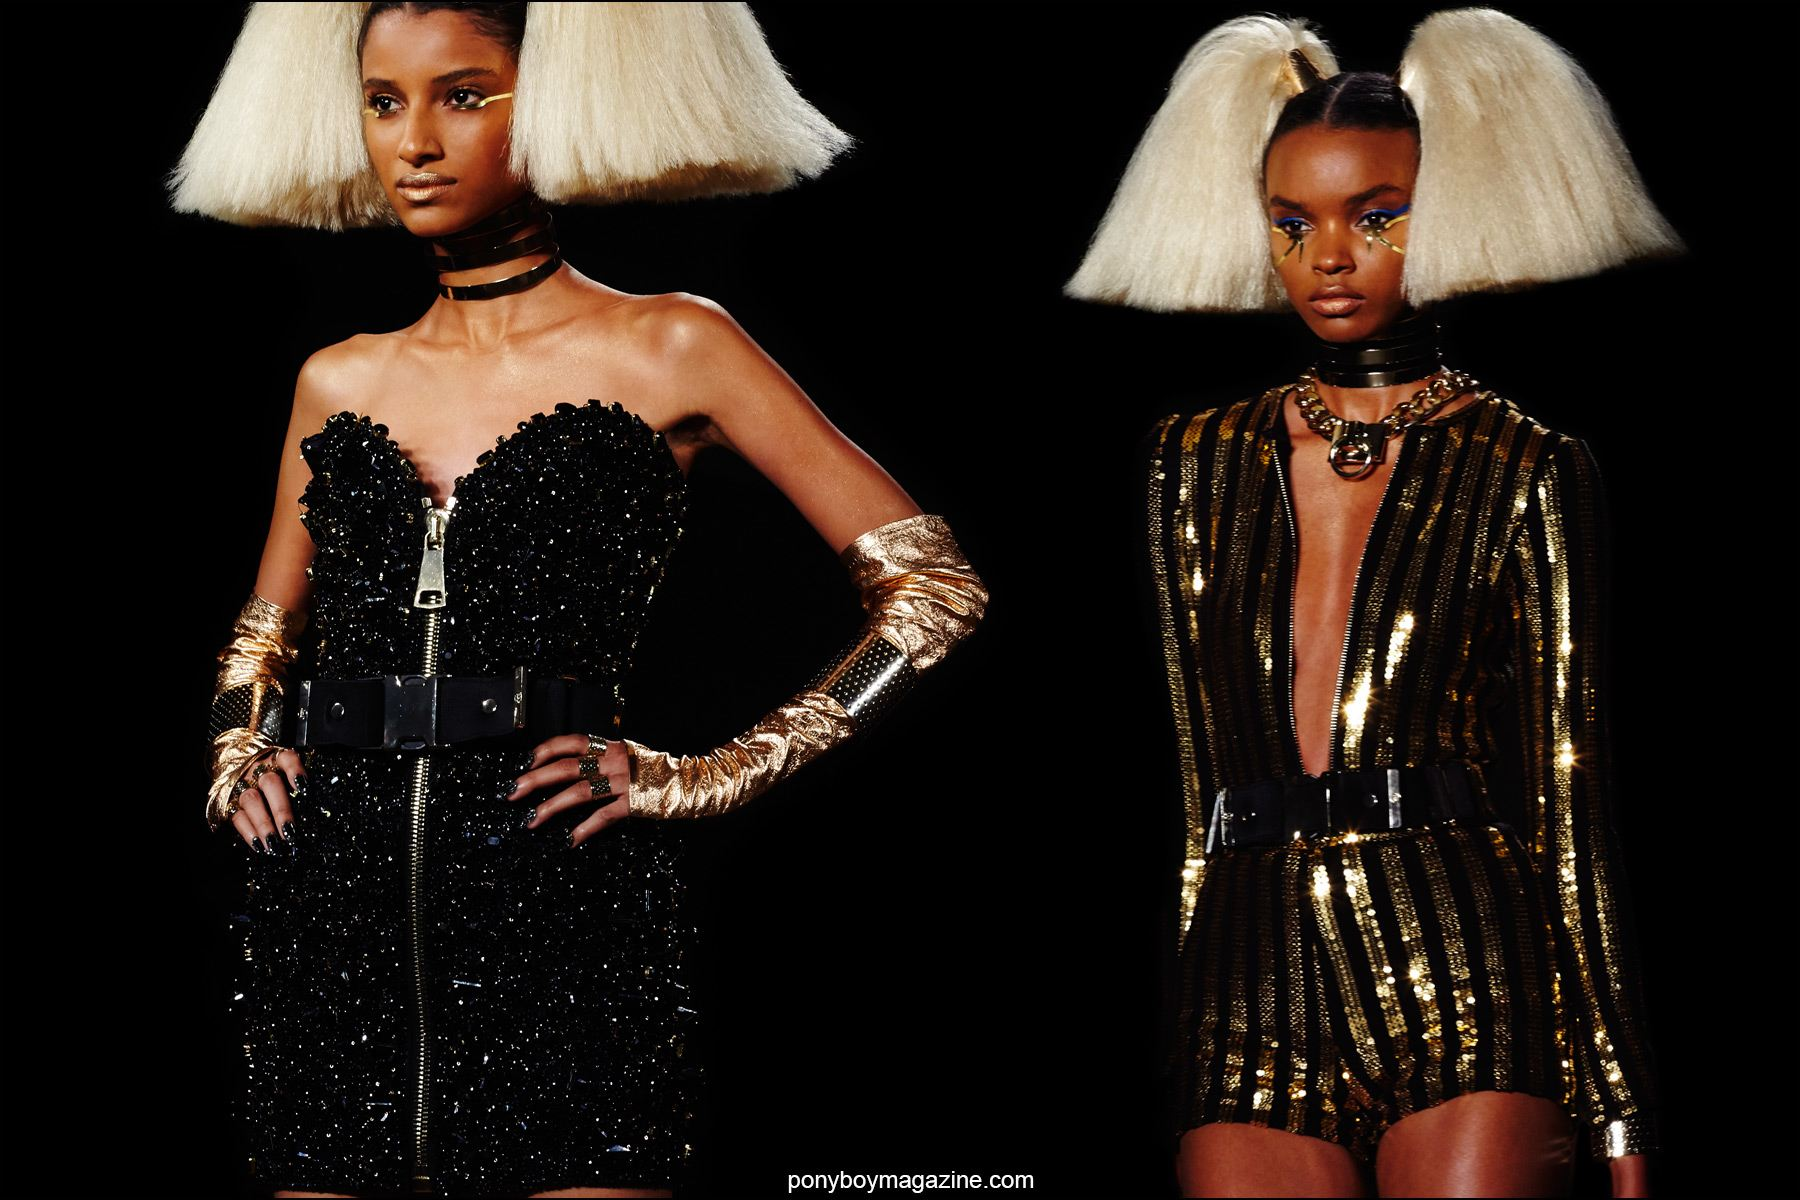 Glittery creations on the Blonds Spring/Summer 2016 runway, photographed by Alexander Thompson for Ponyboy magazine NY.